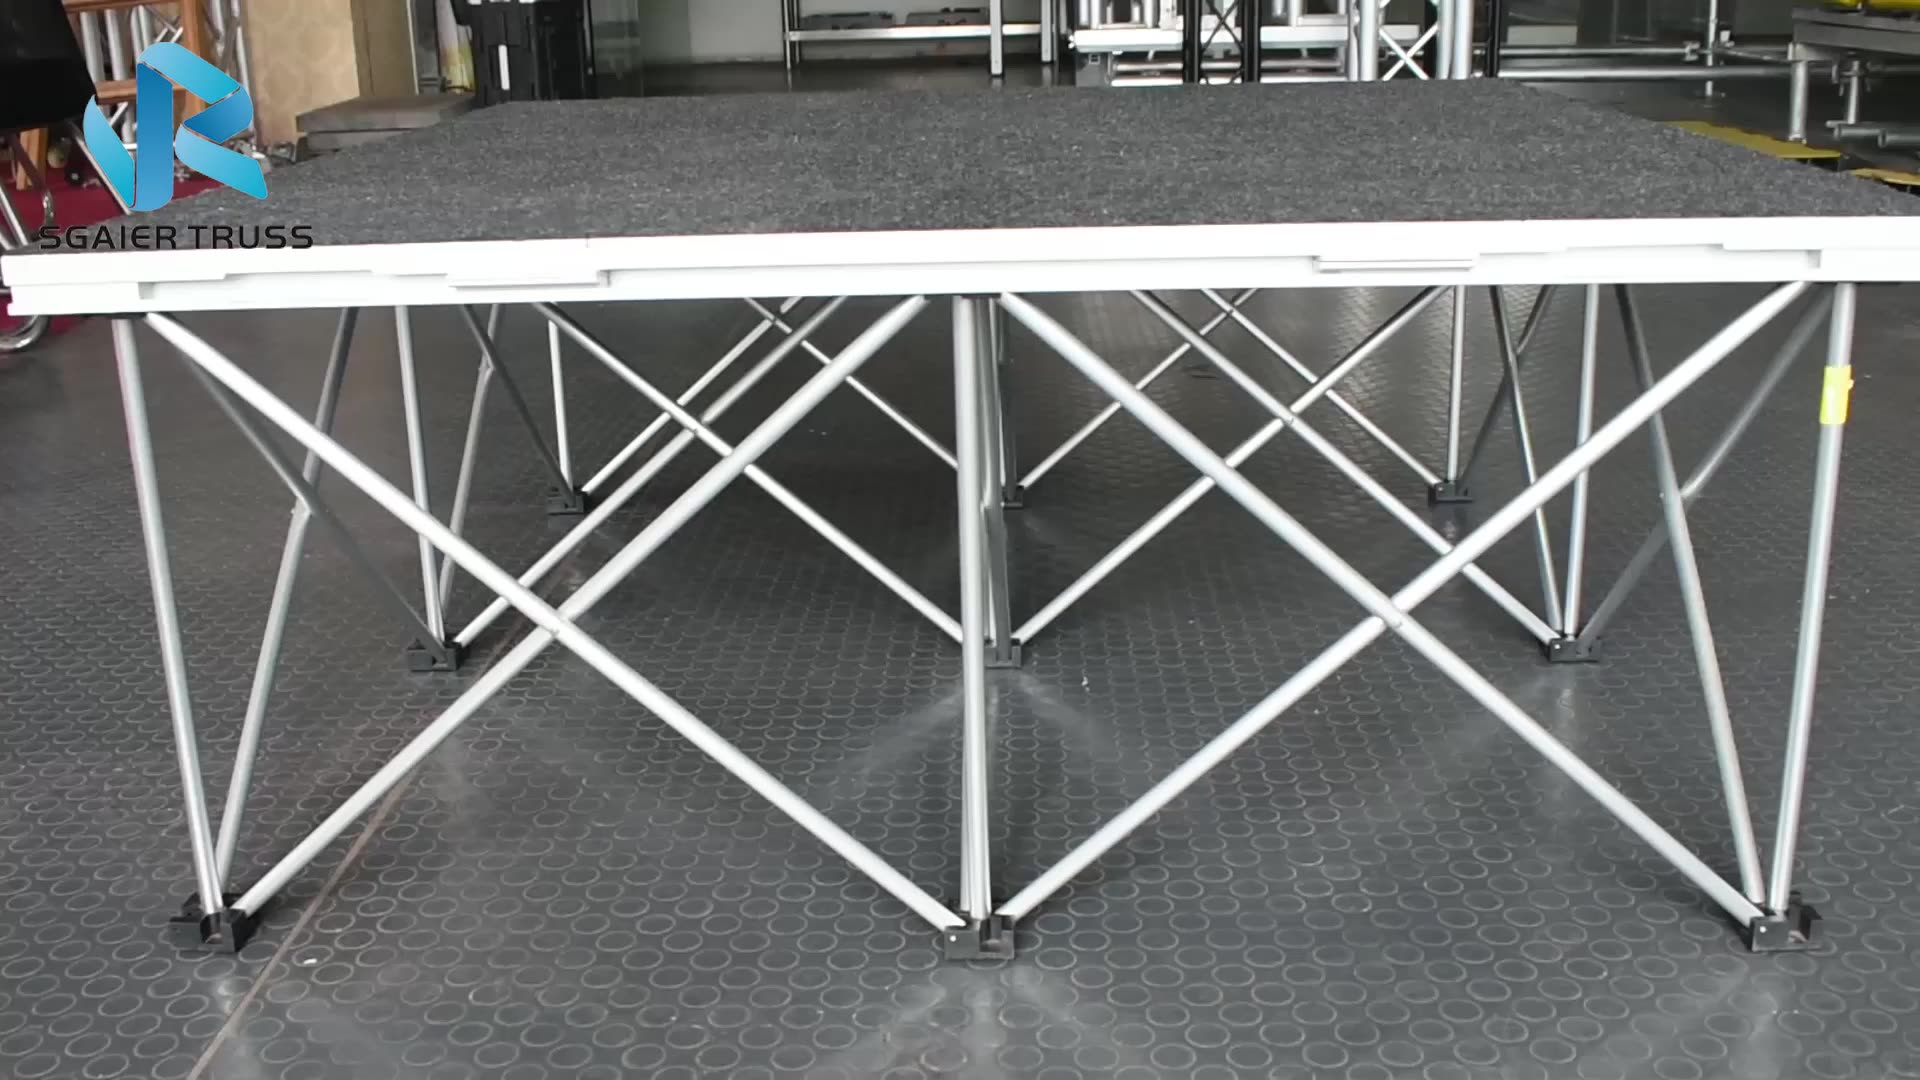 4x4 Aluminium Stage Spider Staging Equipment From Sgaier Truss